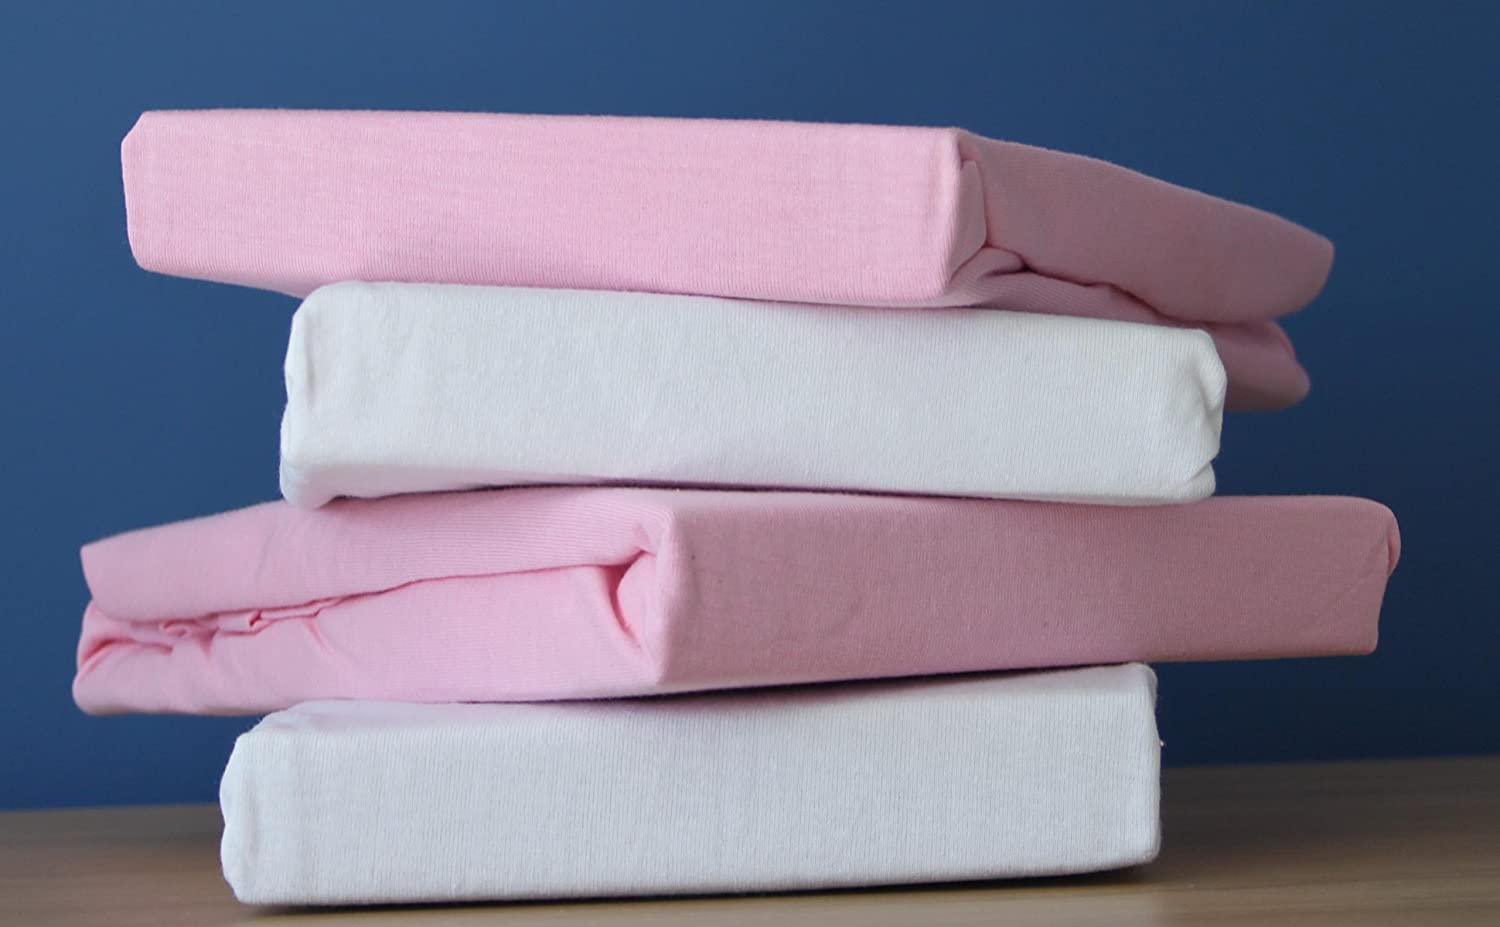 Dudu N Girlie Jersey Cotton Travel Cot Fitted Sheets, 2-Piece, White & Pink 1019WP